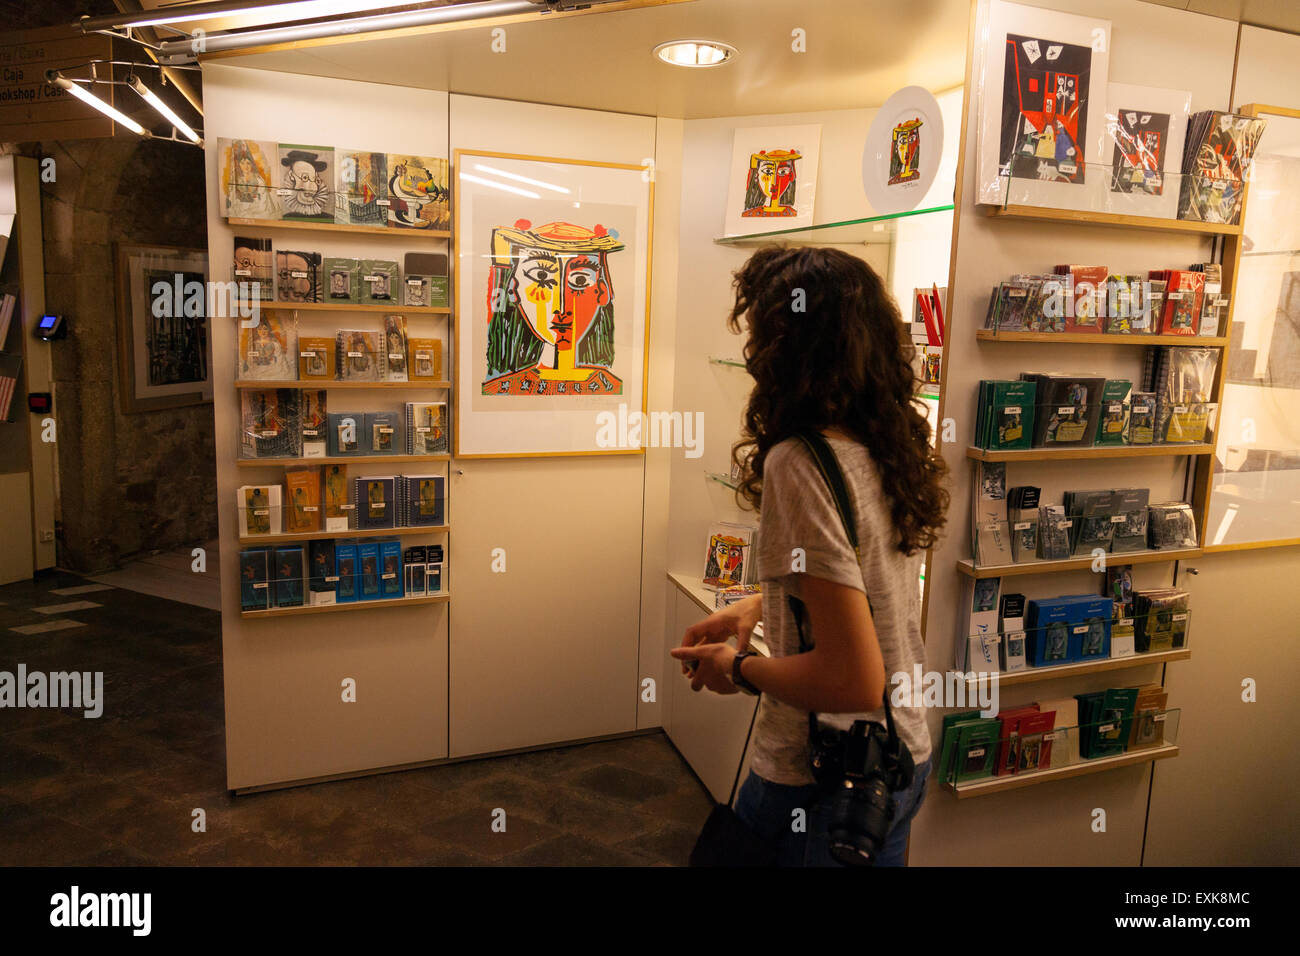 a tourist in the gift shop of the museu picasso picasso museum stock photo royalty free image. Black Bedroom Furniture Sets. Home Design Ideas